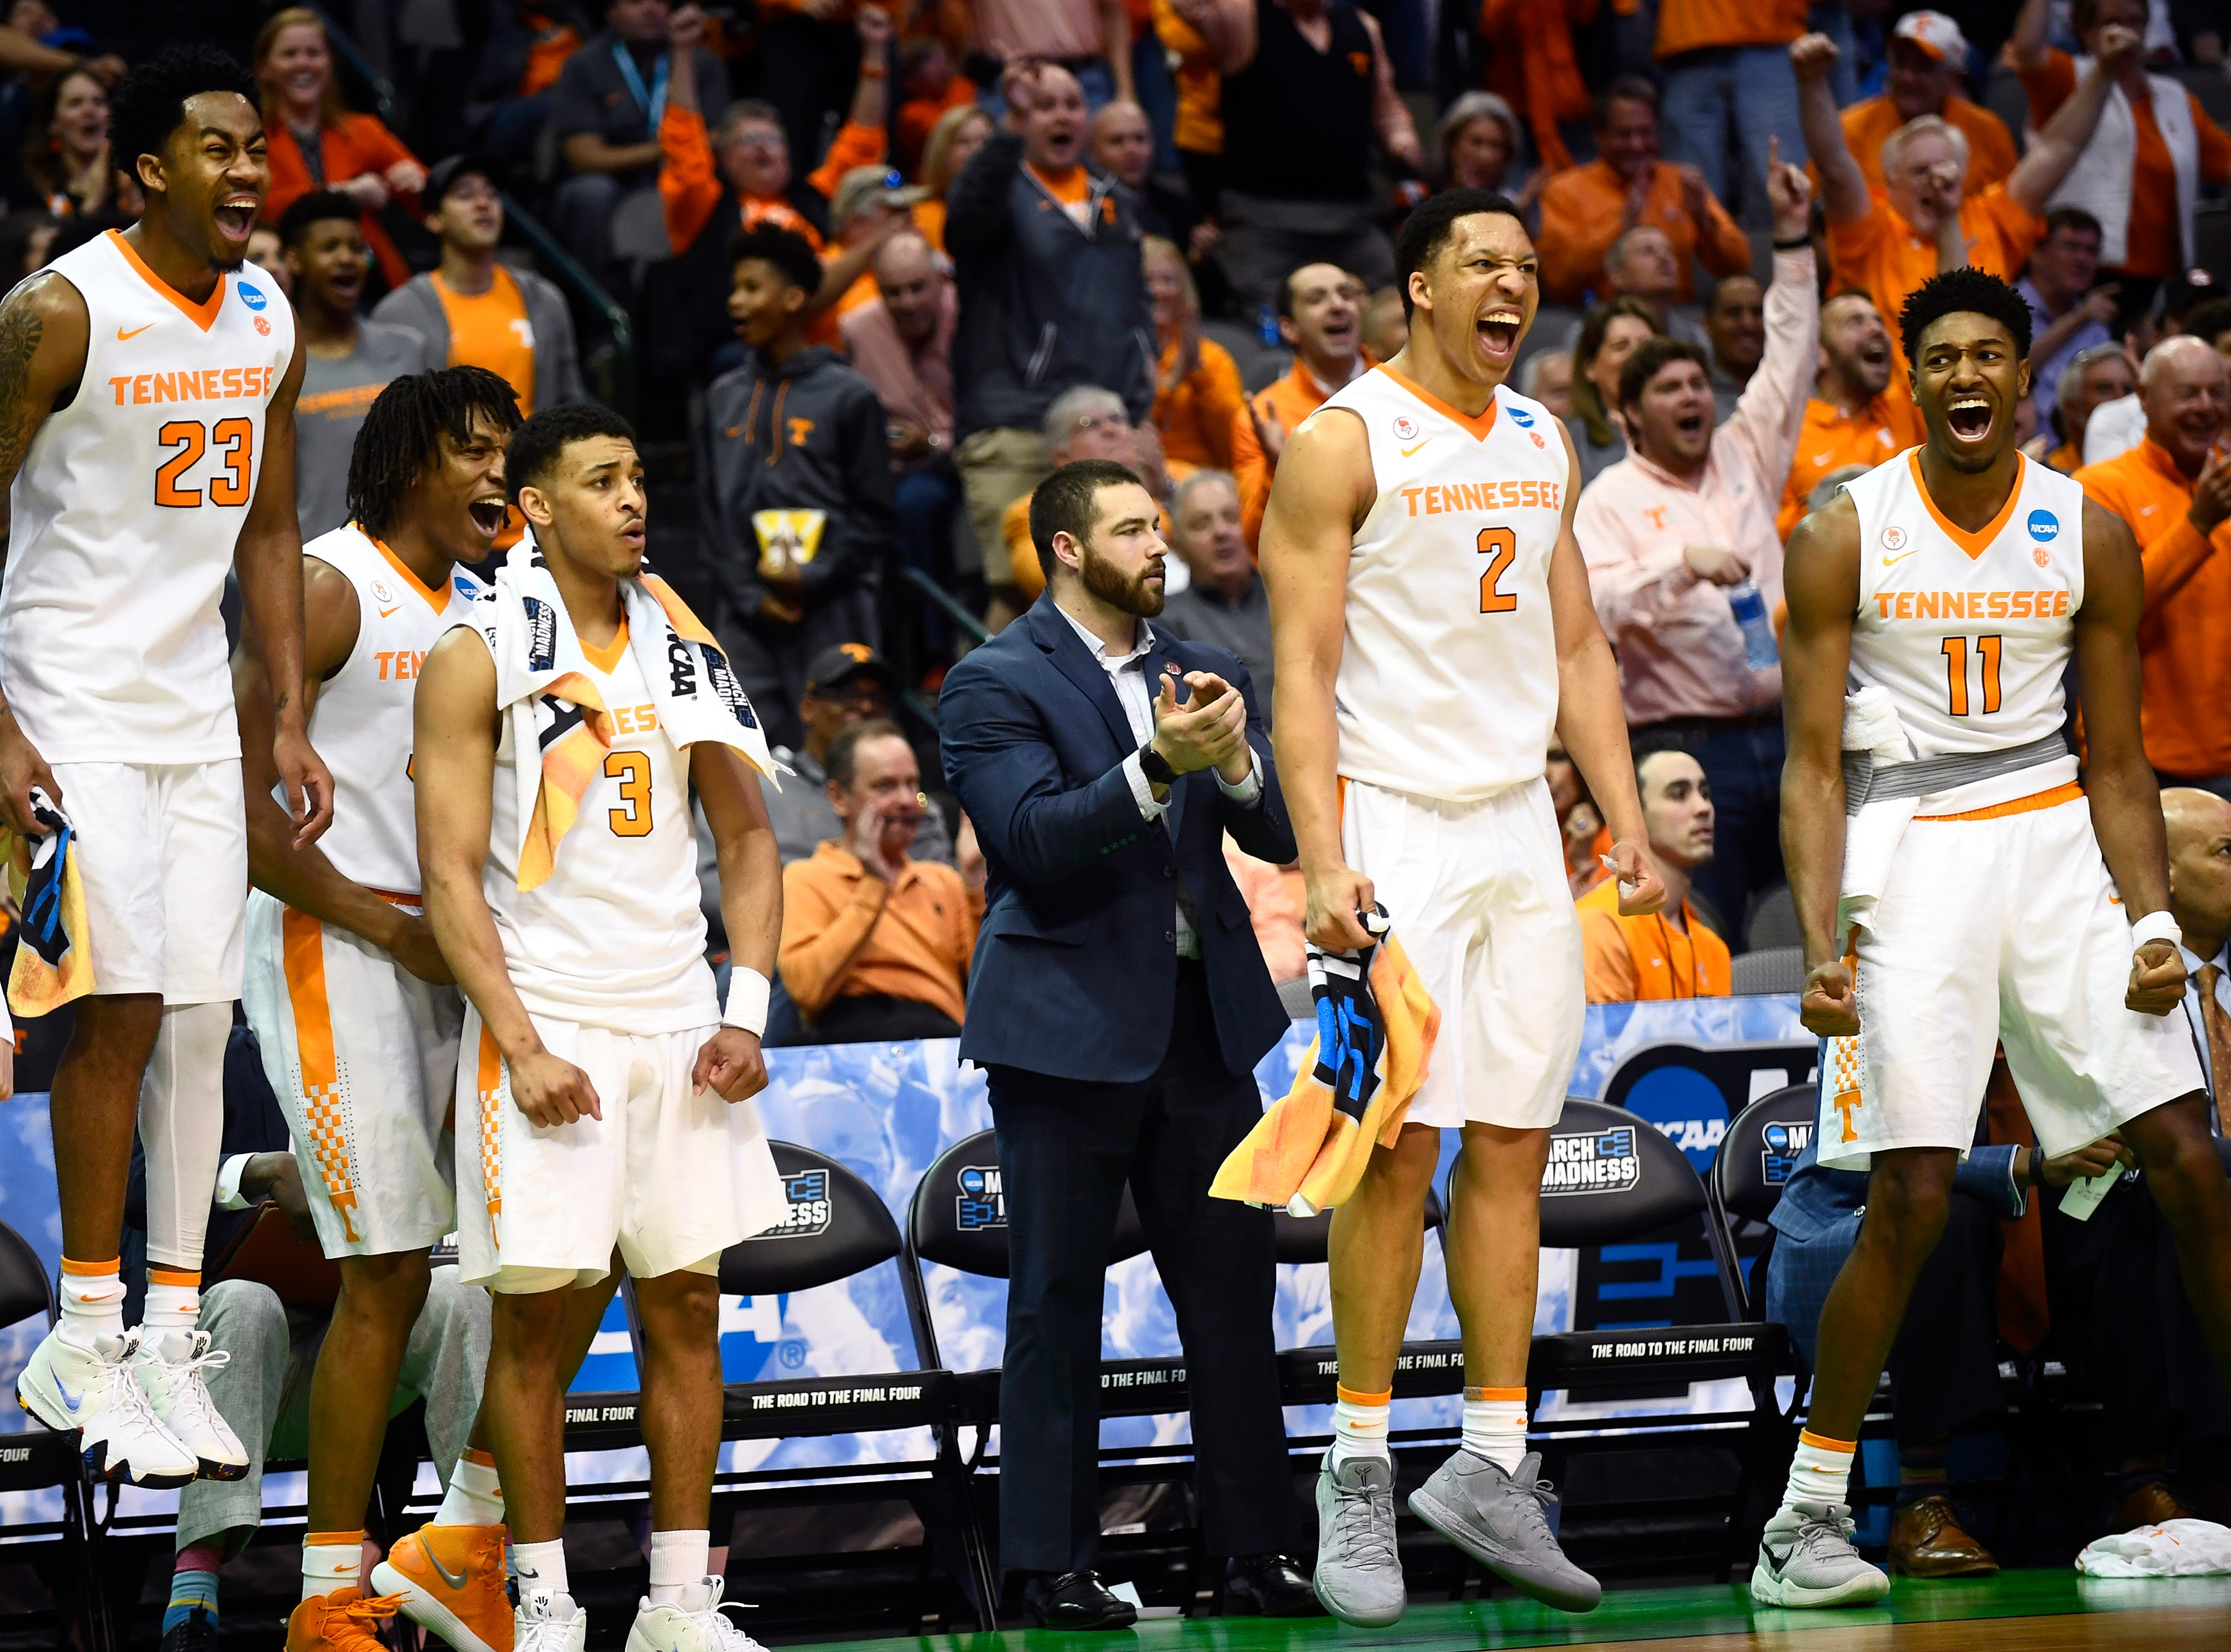 The Tennessee bench celebrates a slam dunk by Tennessee guard Jalen Johnson (13) during the NCAA Tournament first round game between Tennessee and Wright State at American Airlines Center in Dallas, Texas, on Thursday, March 15, 2018.